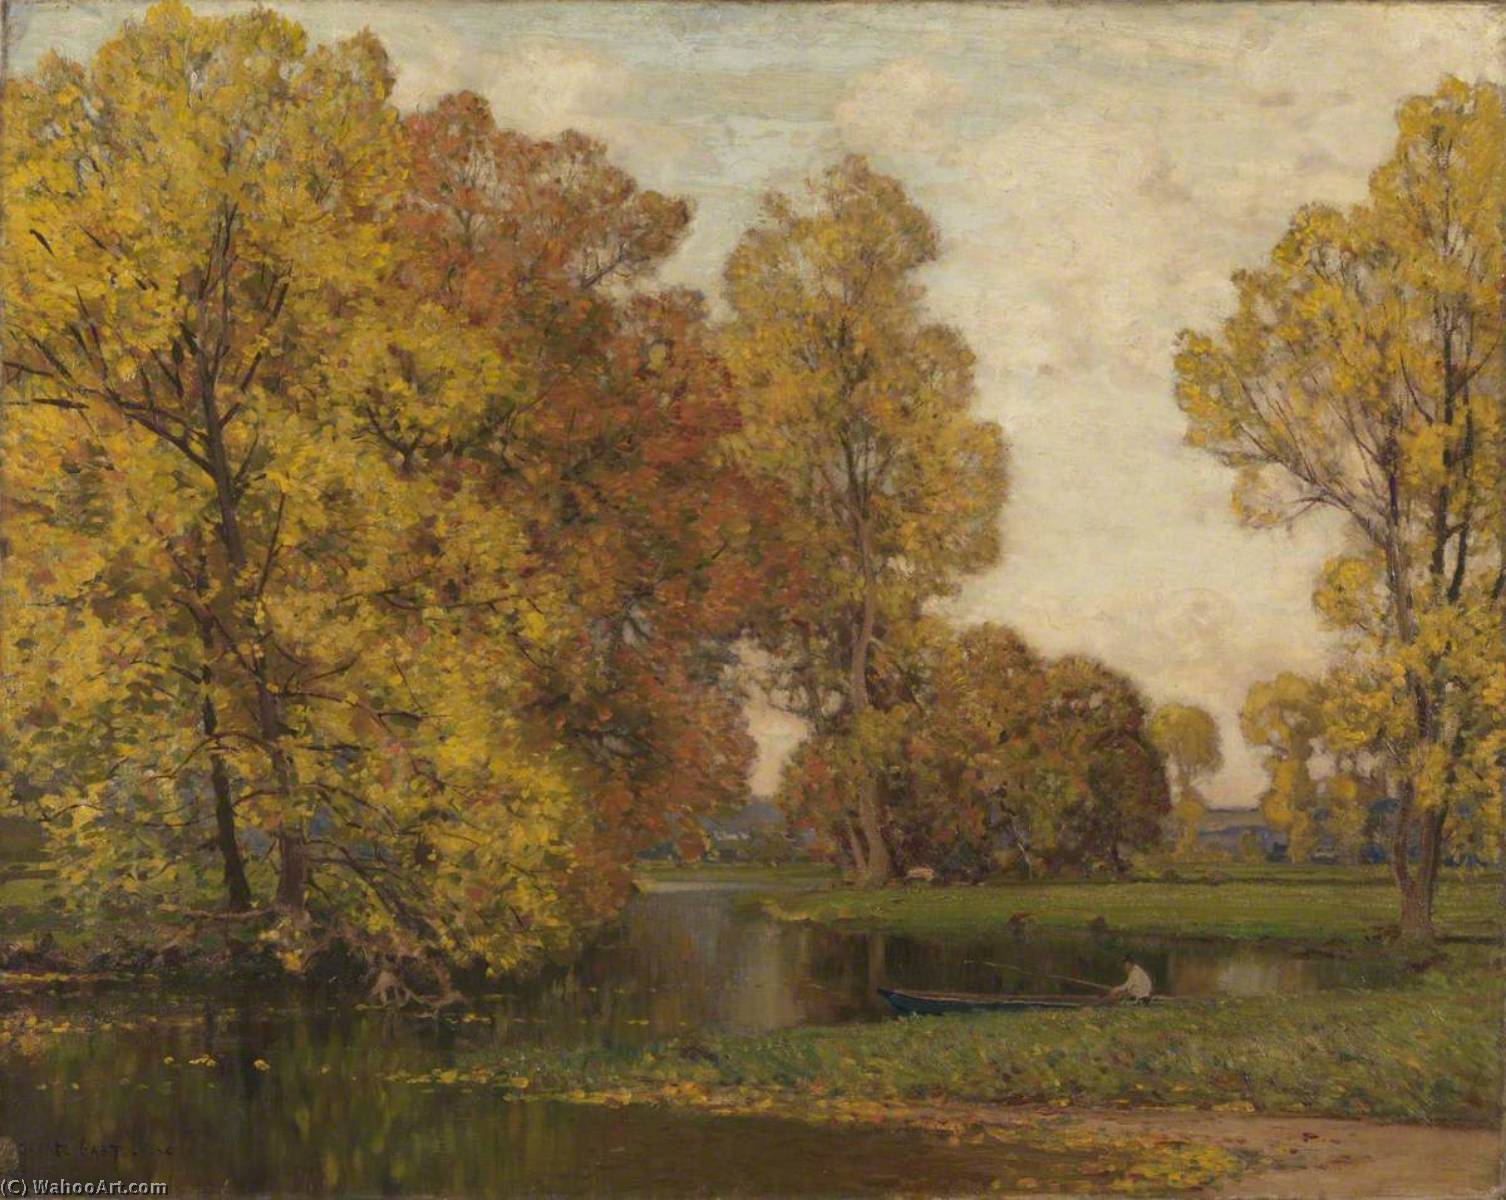 Golden Autumn, 1904 by Alfred East (1844-1913) | Art Reproduction | WahooArt.com